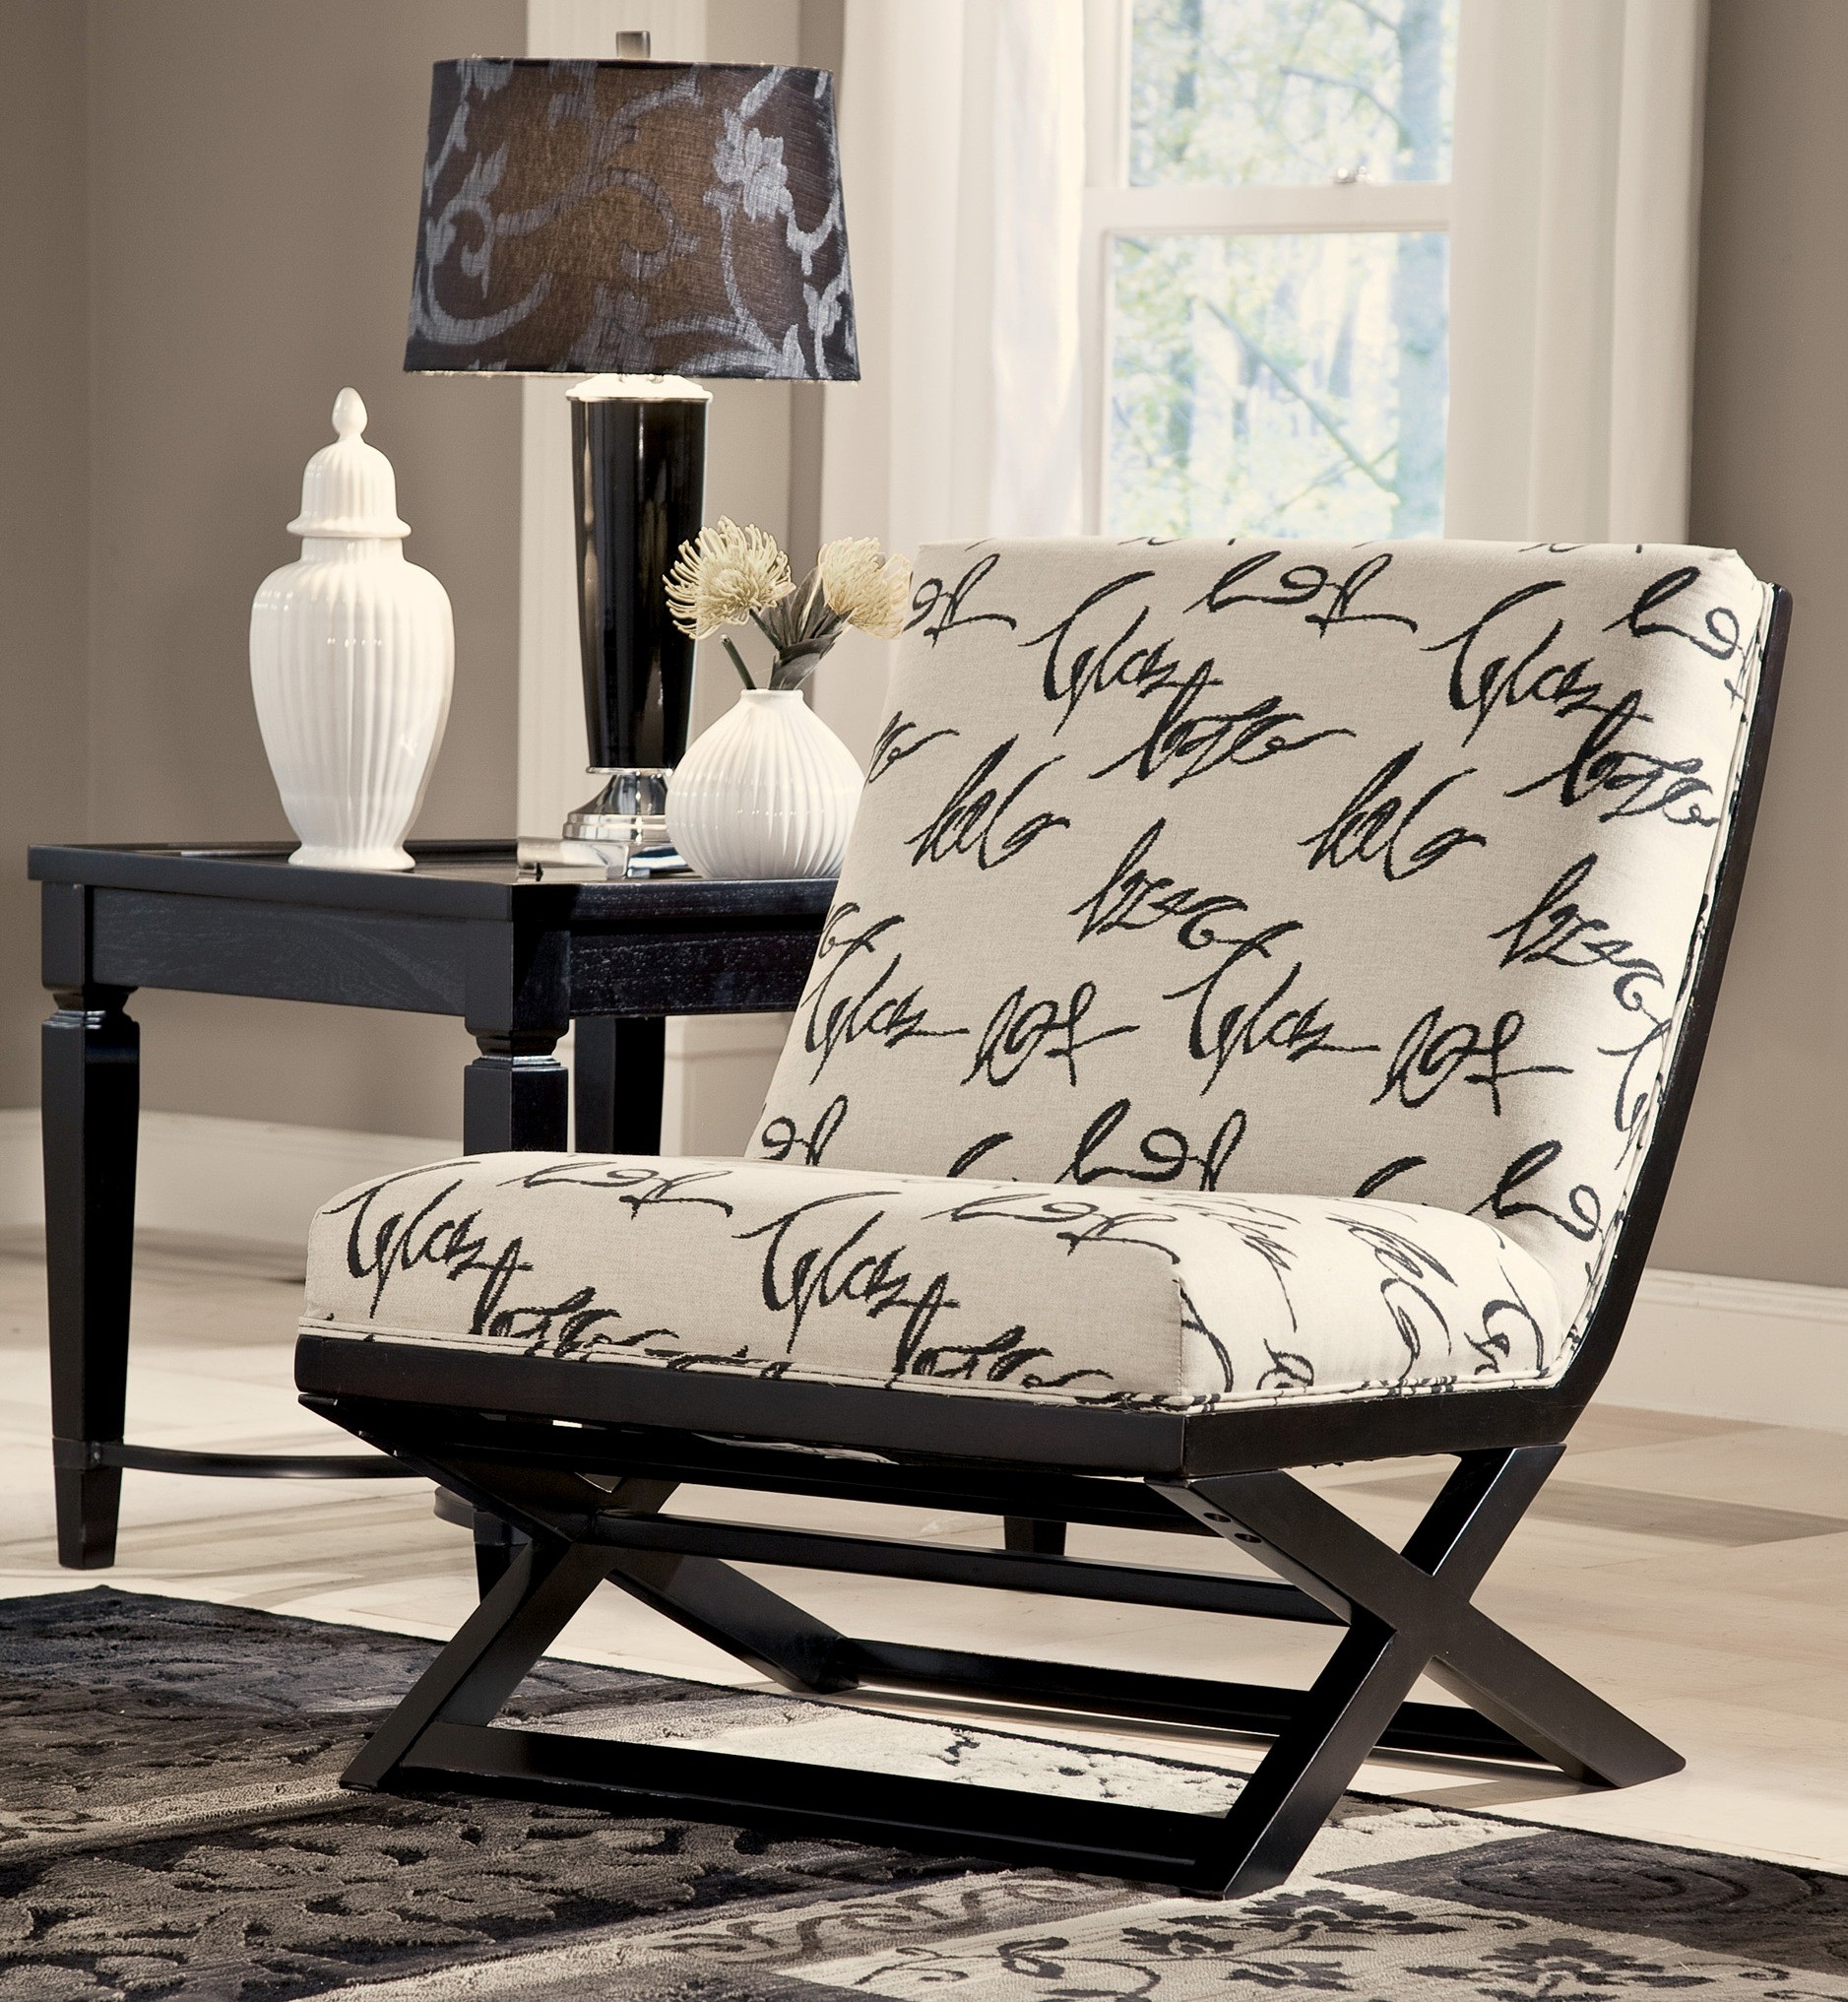 Ashley Furniture Financing Specials: Levon Charcoal Showood Accent Chair From Ashley (7340360